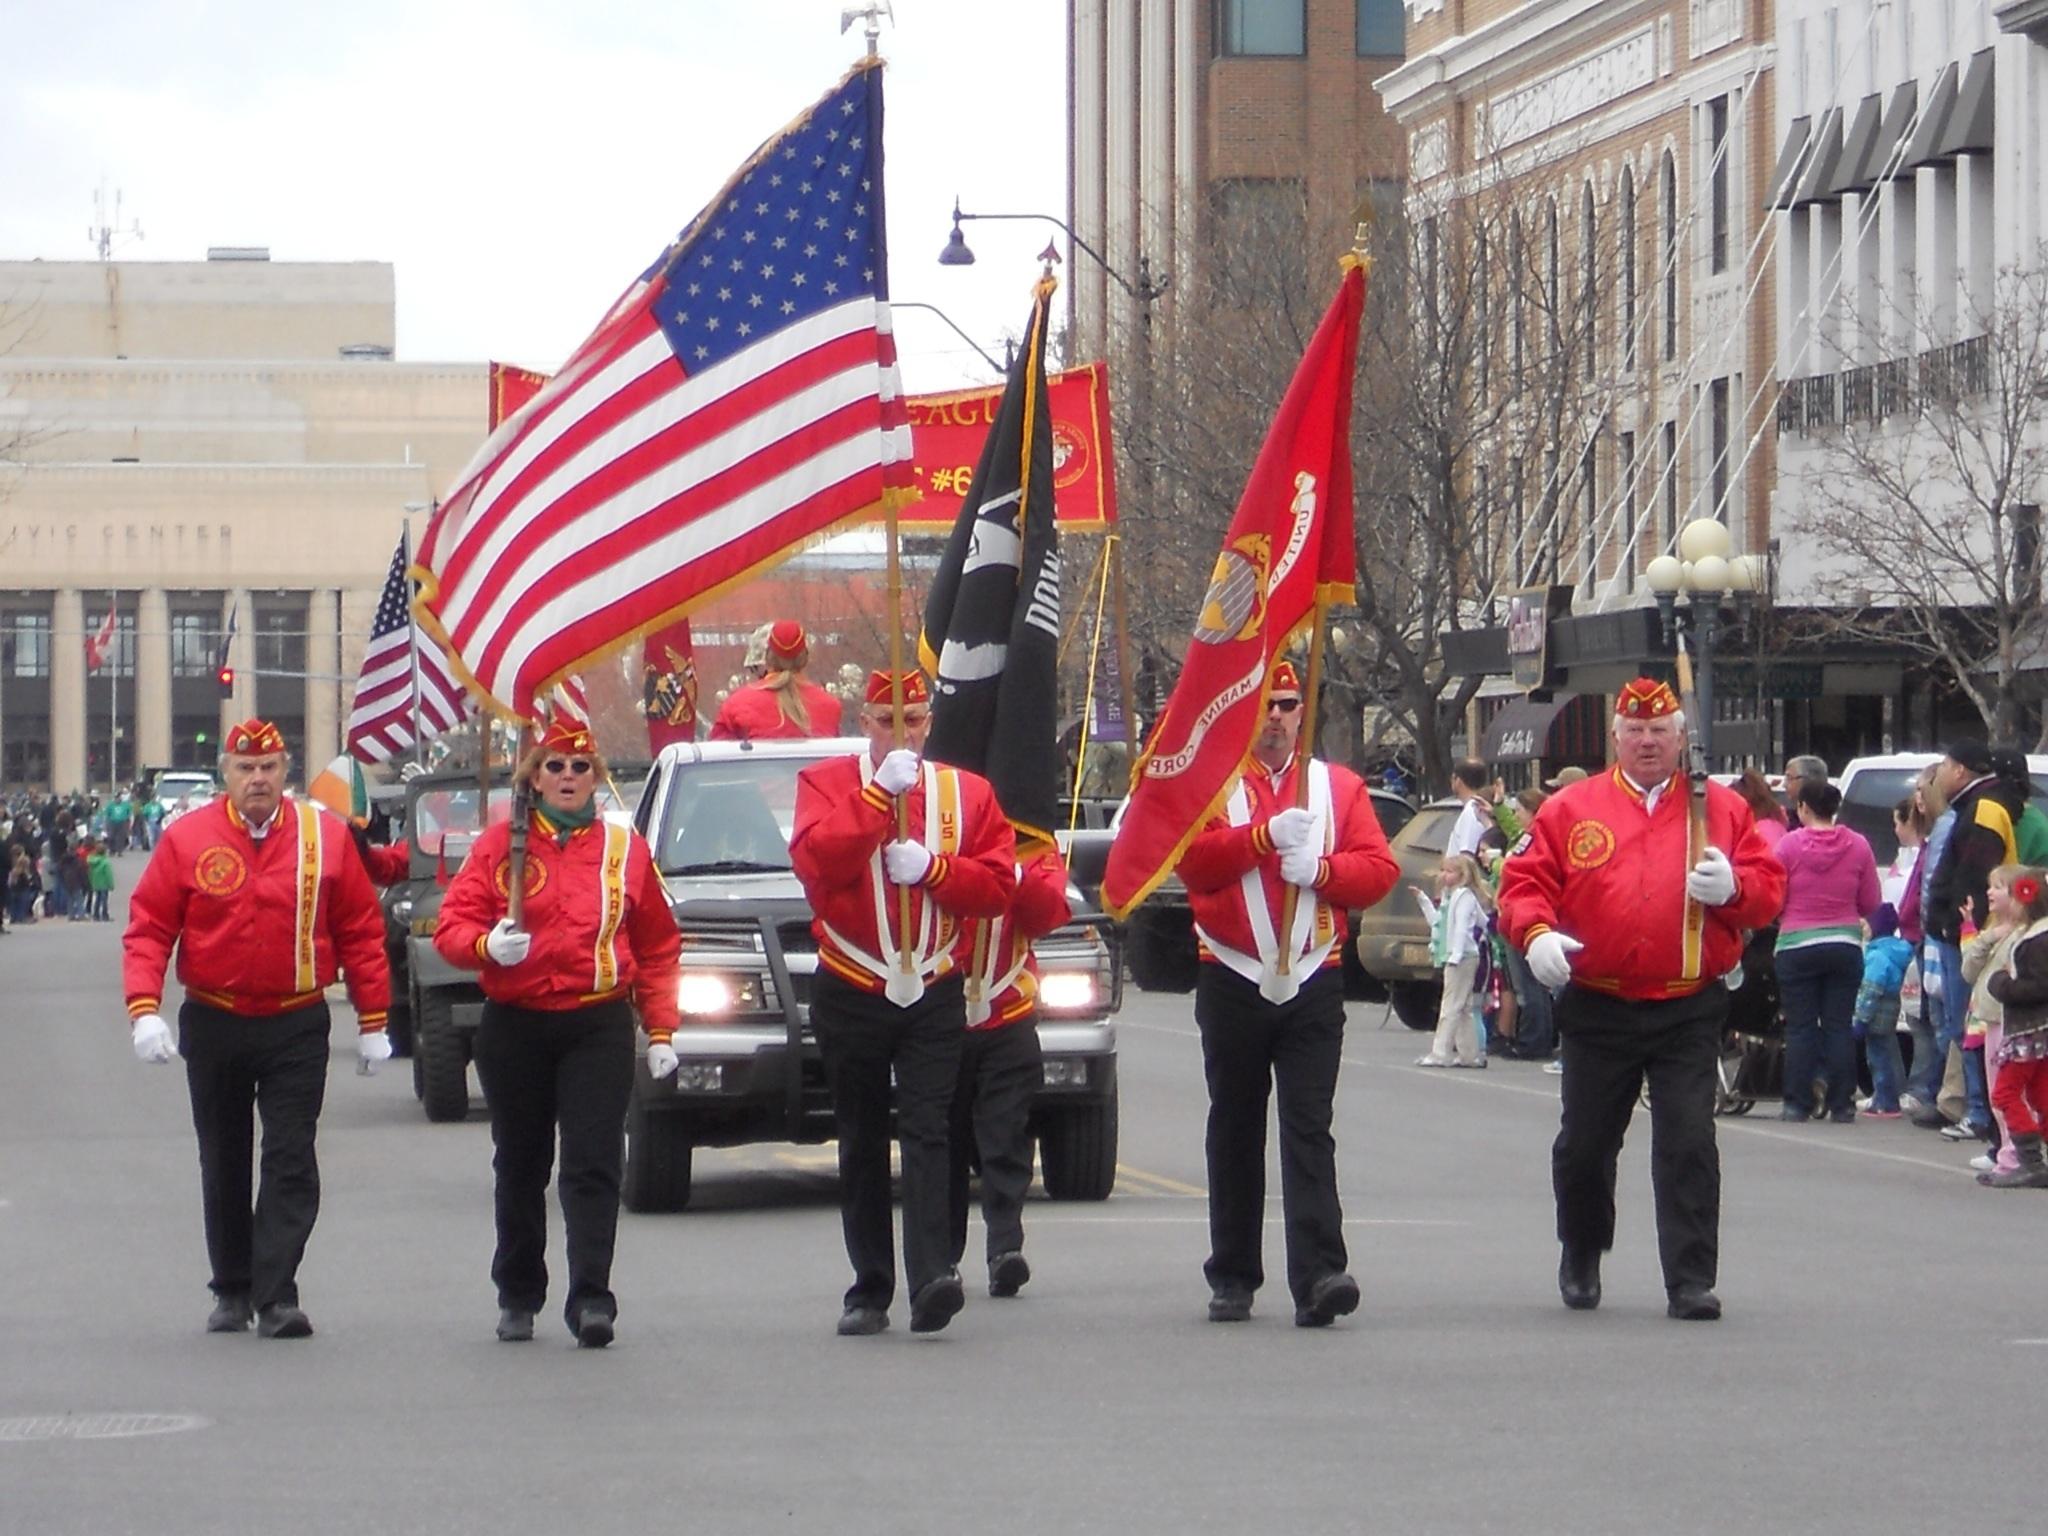 St. Patrick's Day Parade in Great Falls MT